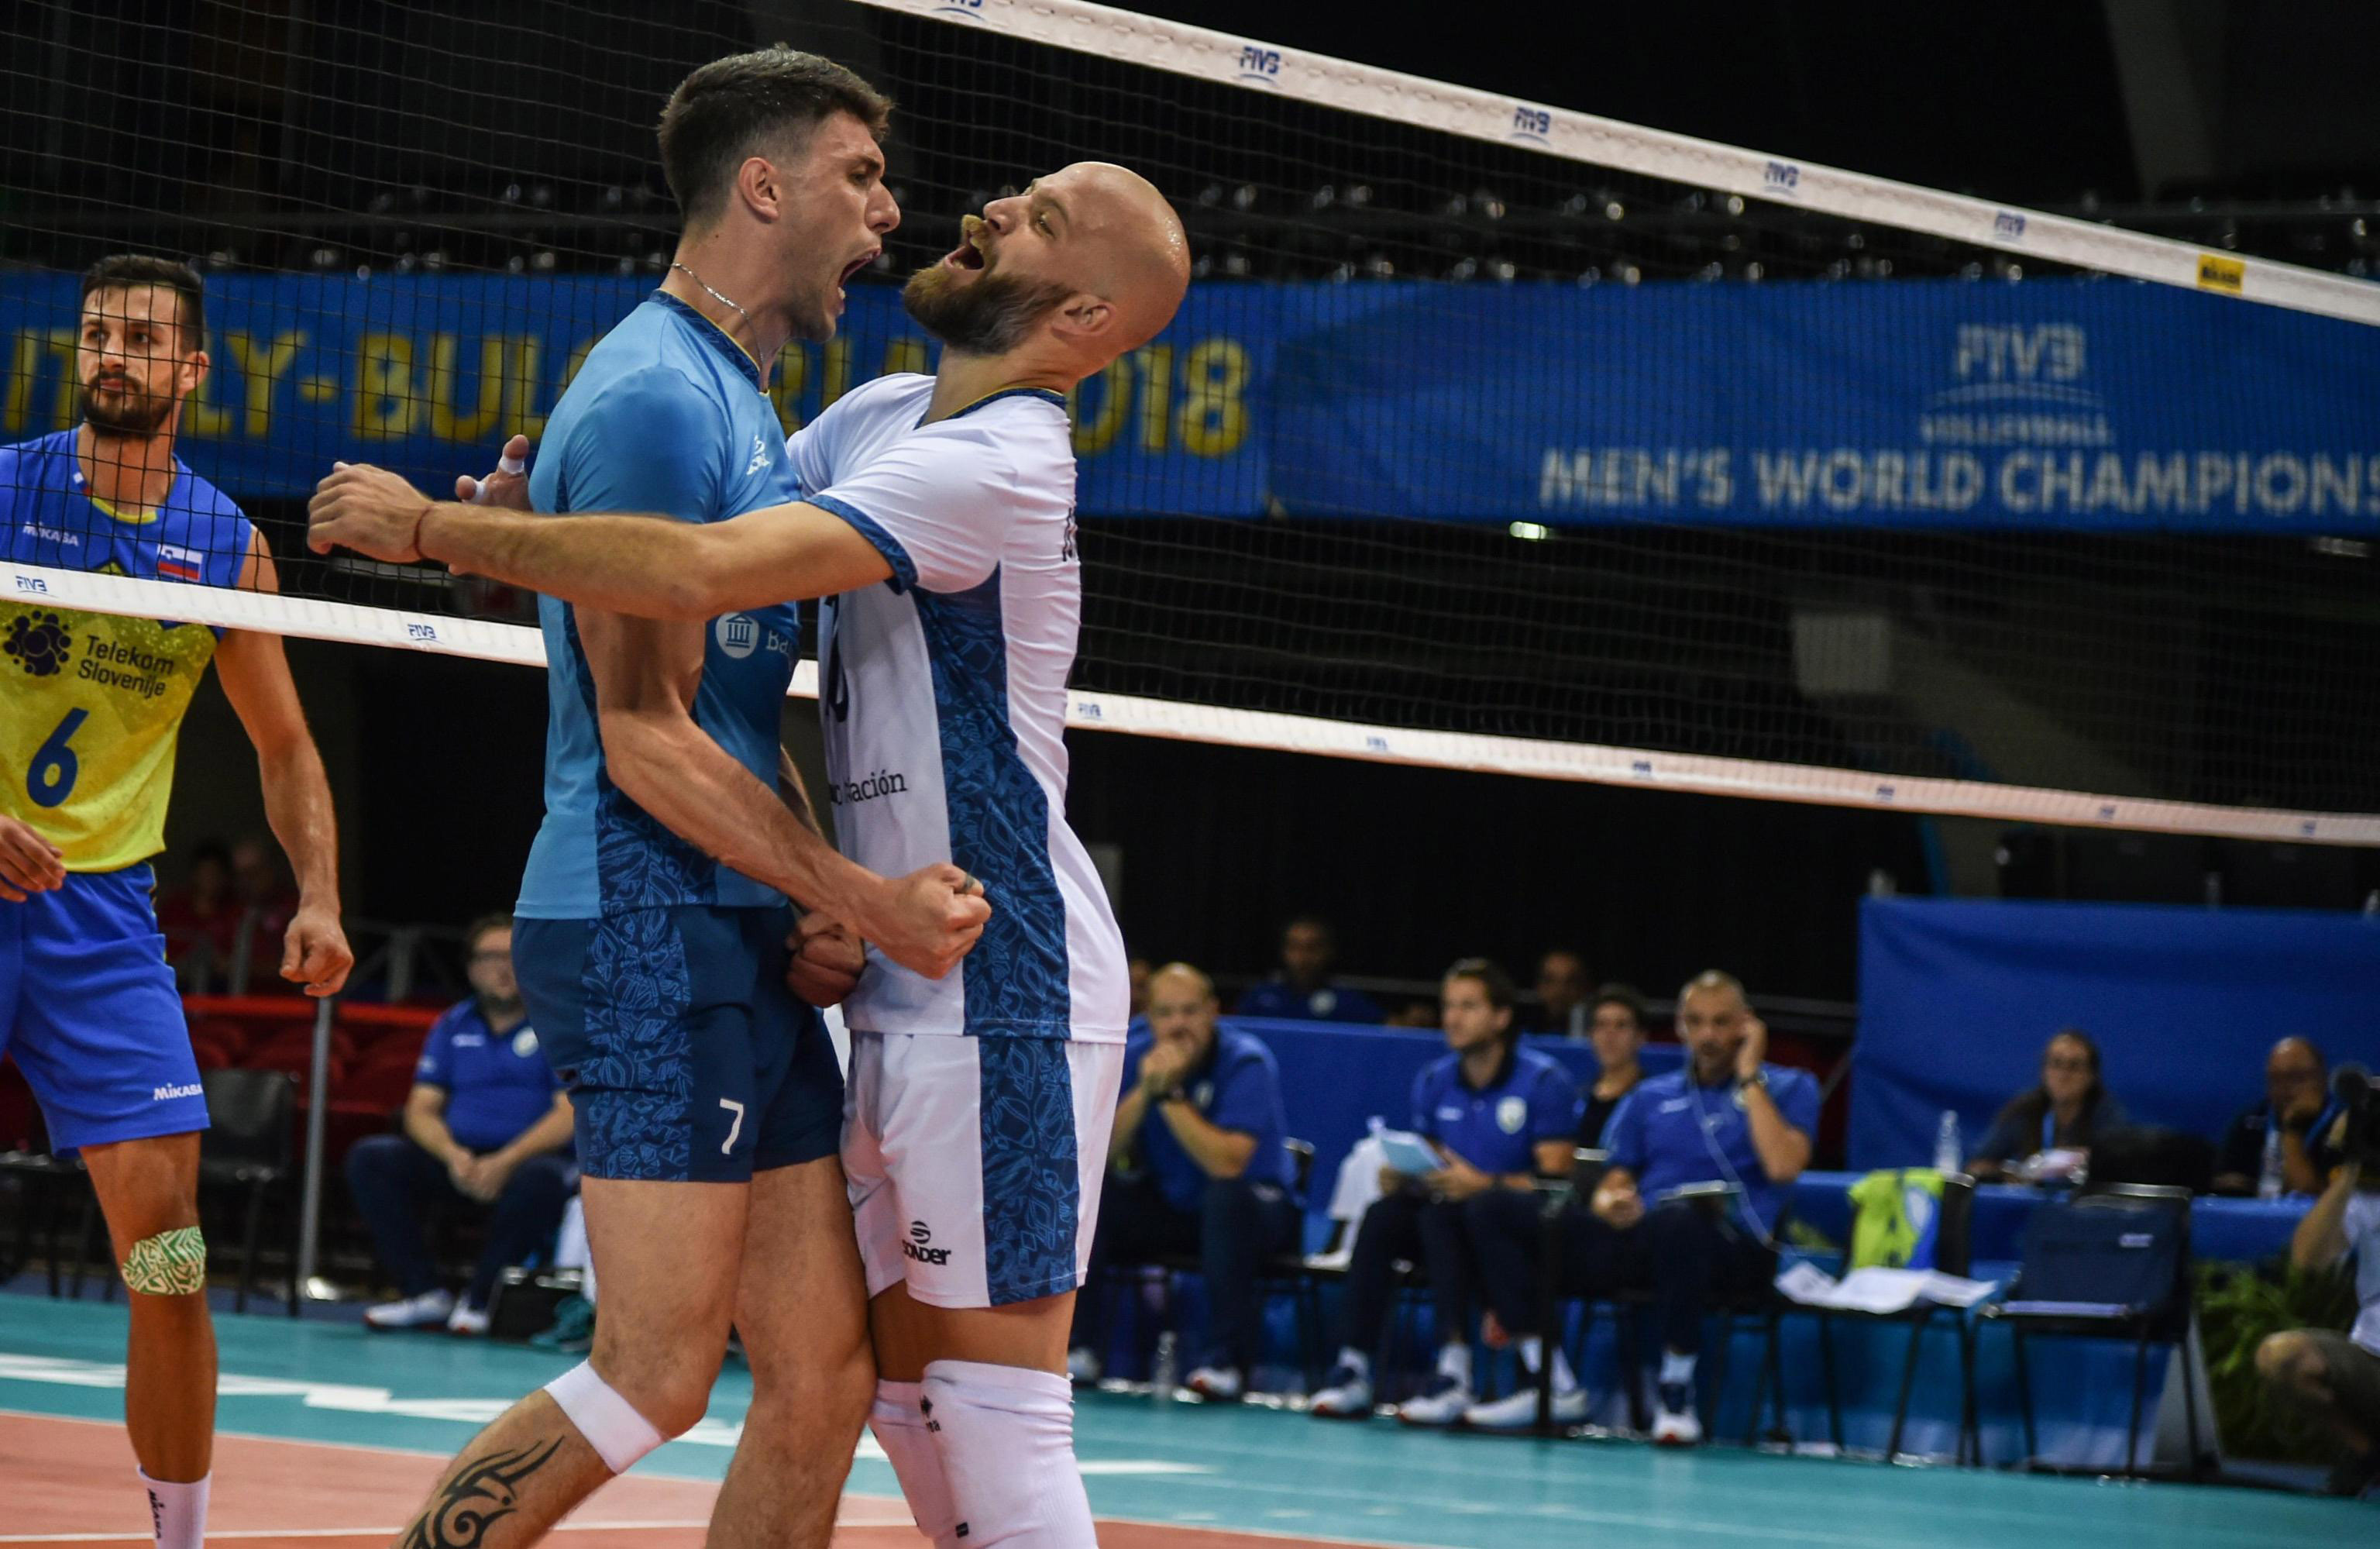 Argentina's Facundo Conte (left) and teammate Alexis Gonzalez celebrate during the Men's World Championships' volleyball match between Argentina and Slovenia, in Florence, Italy on Monday.